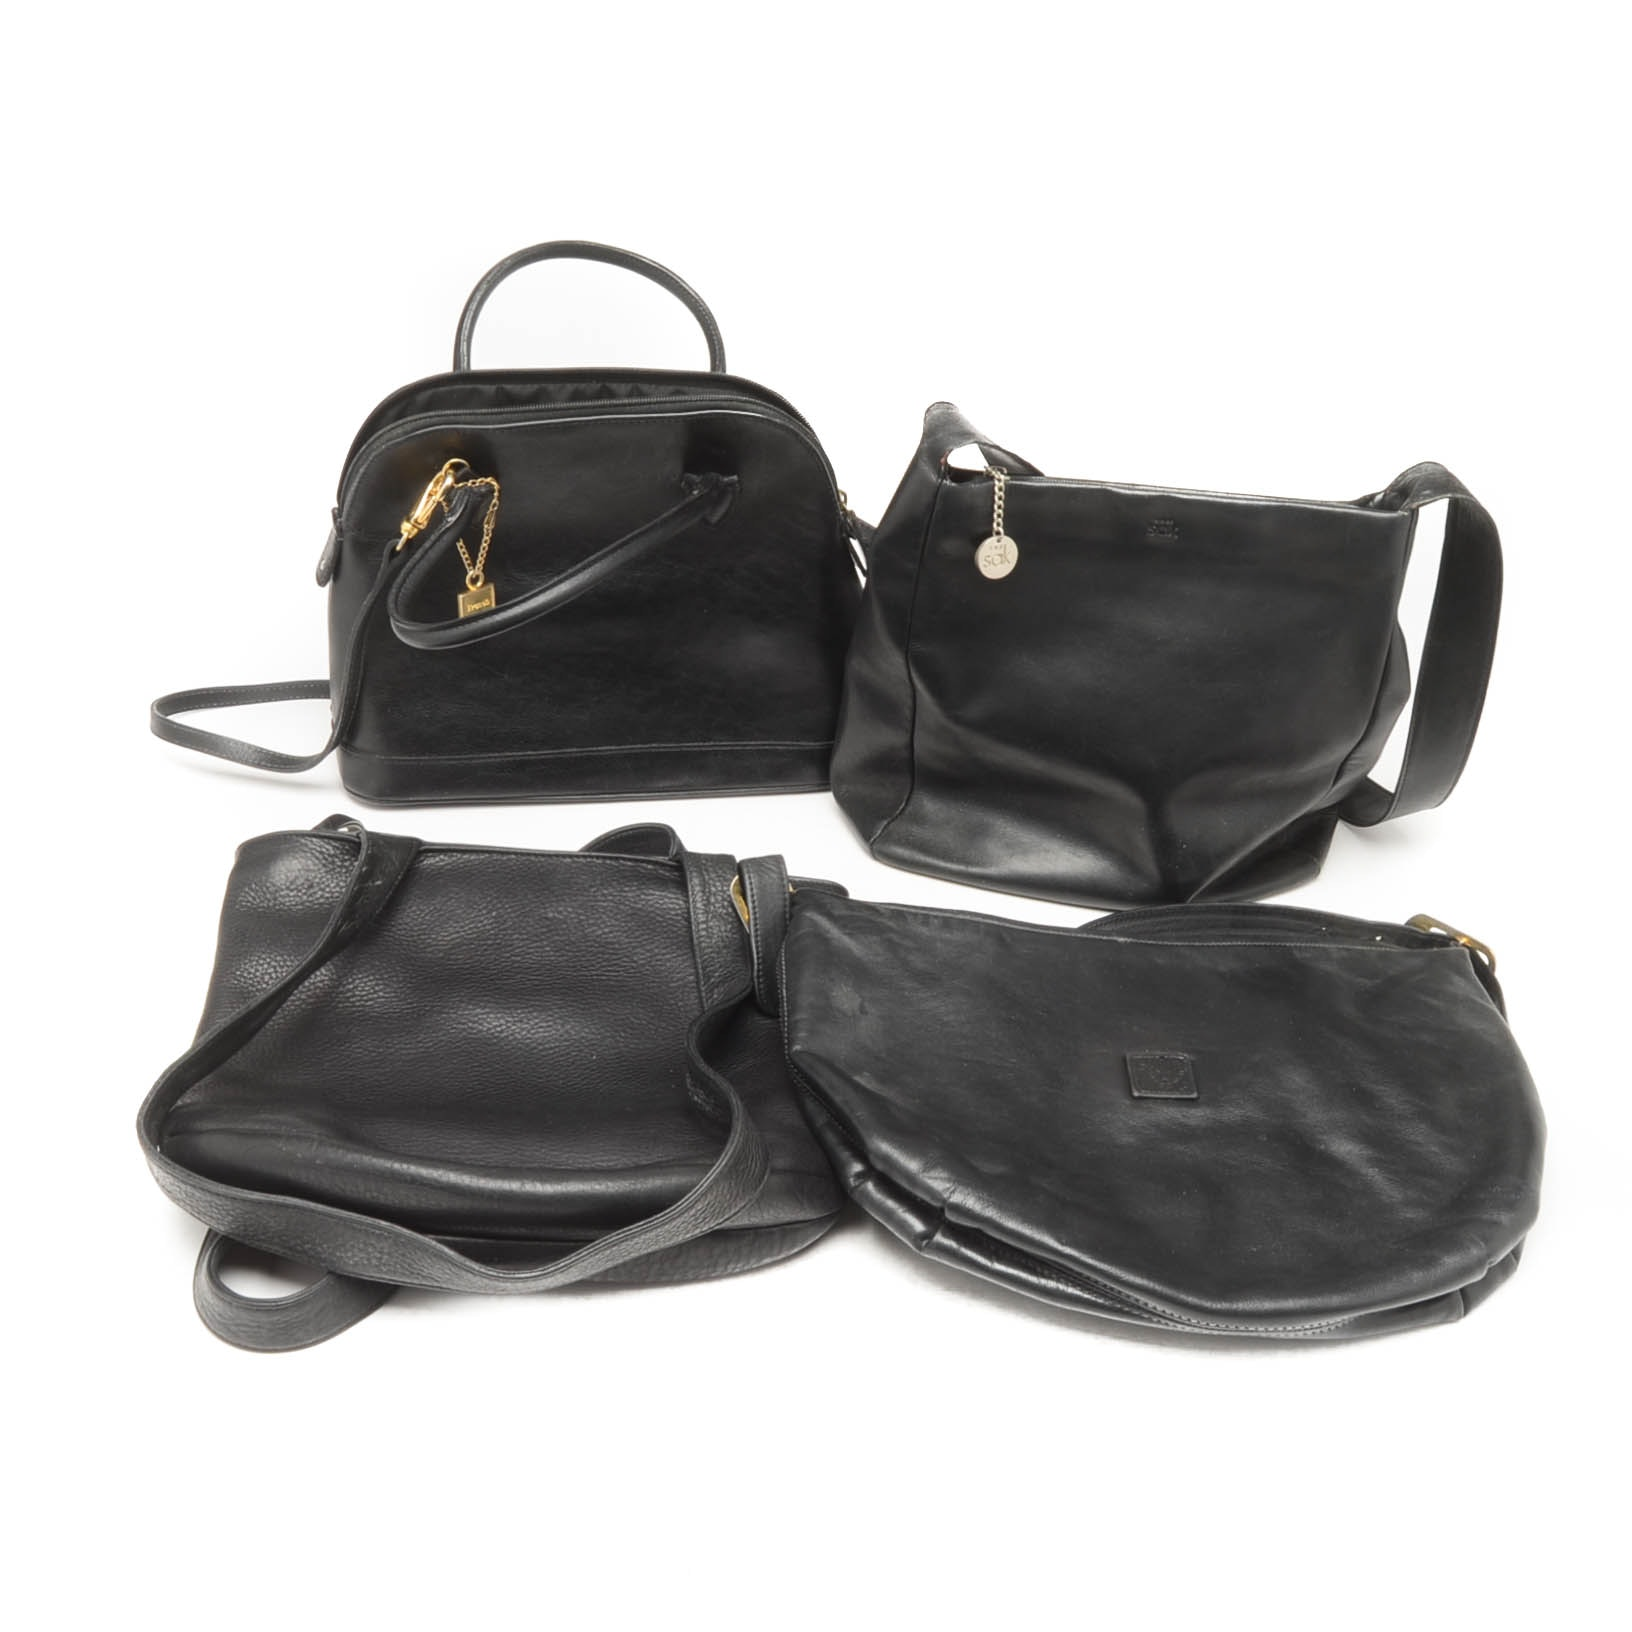 Collection of Vintage Black Leather Handbags